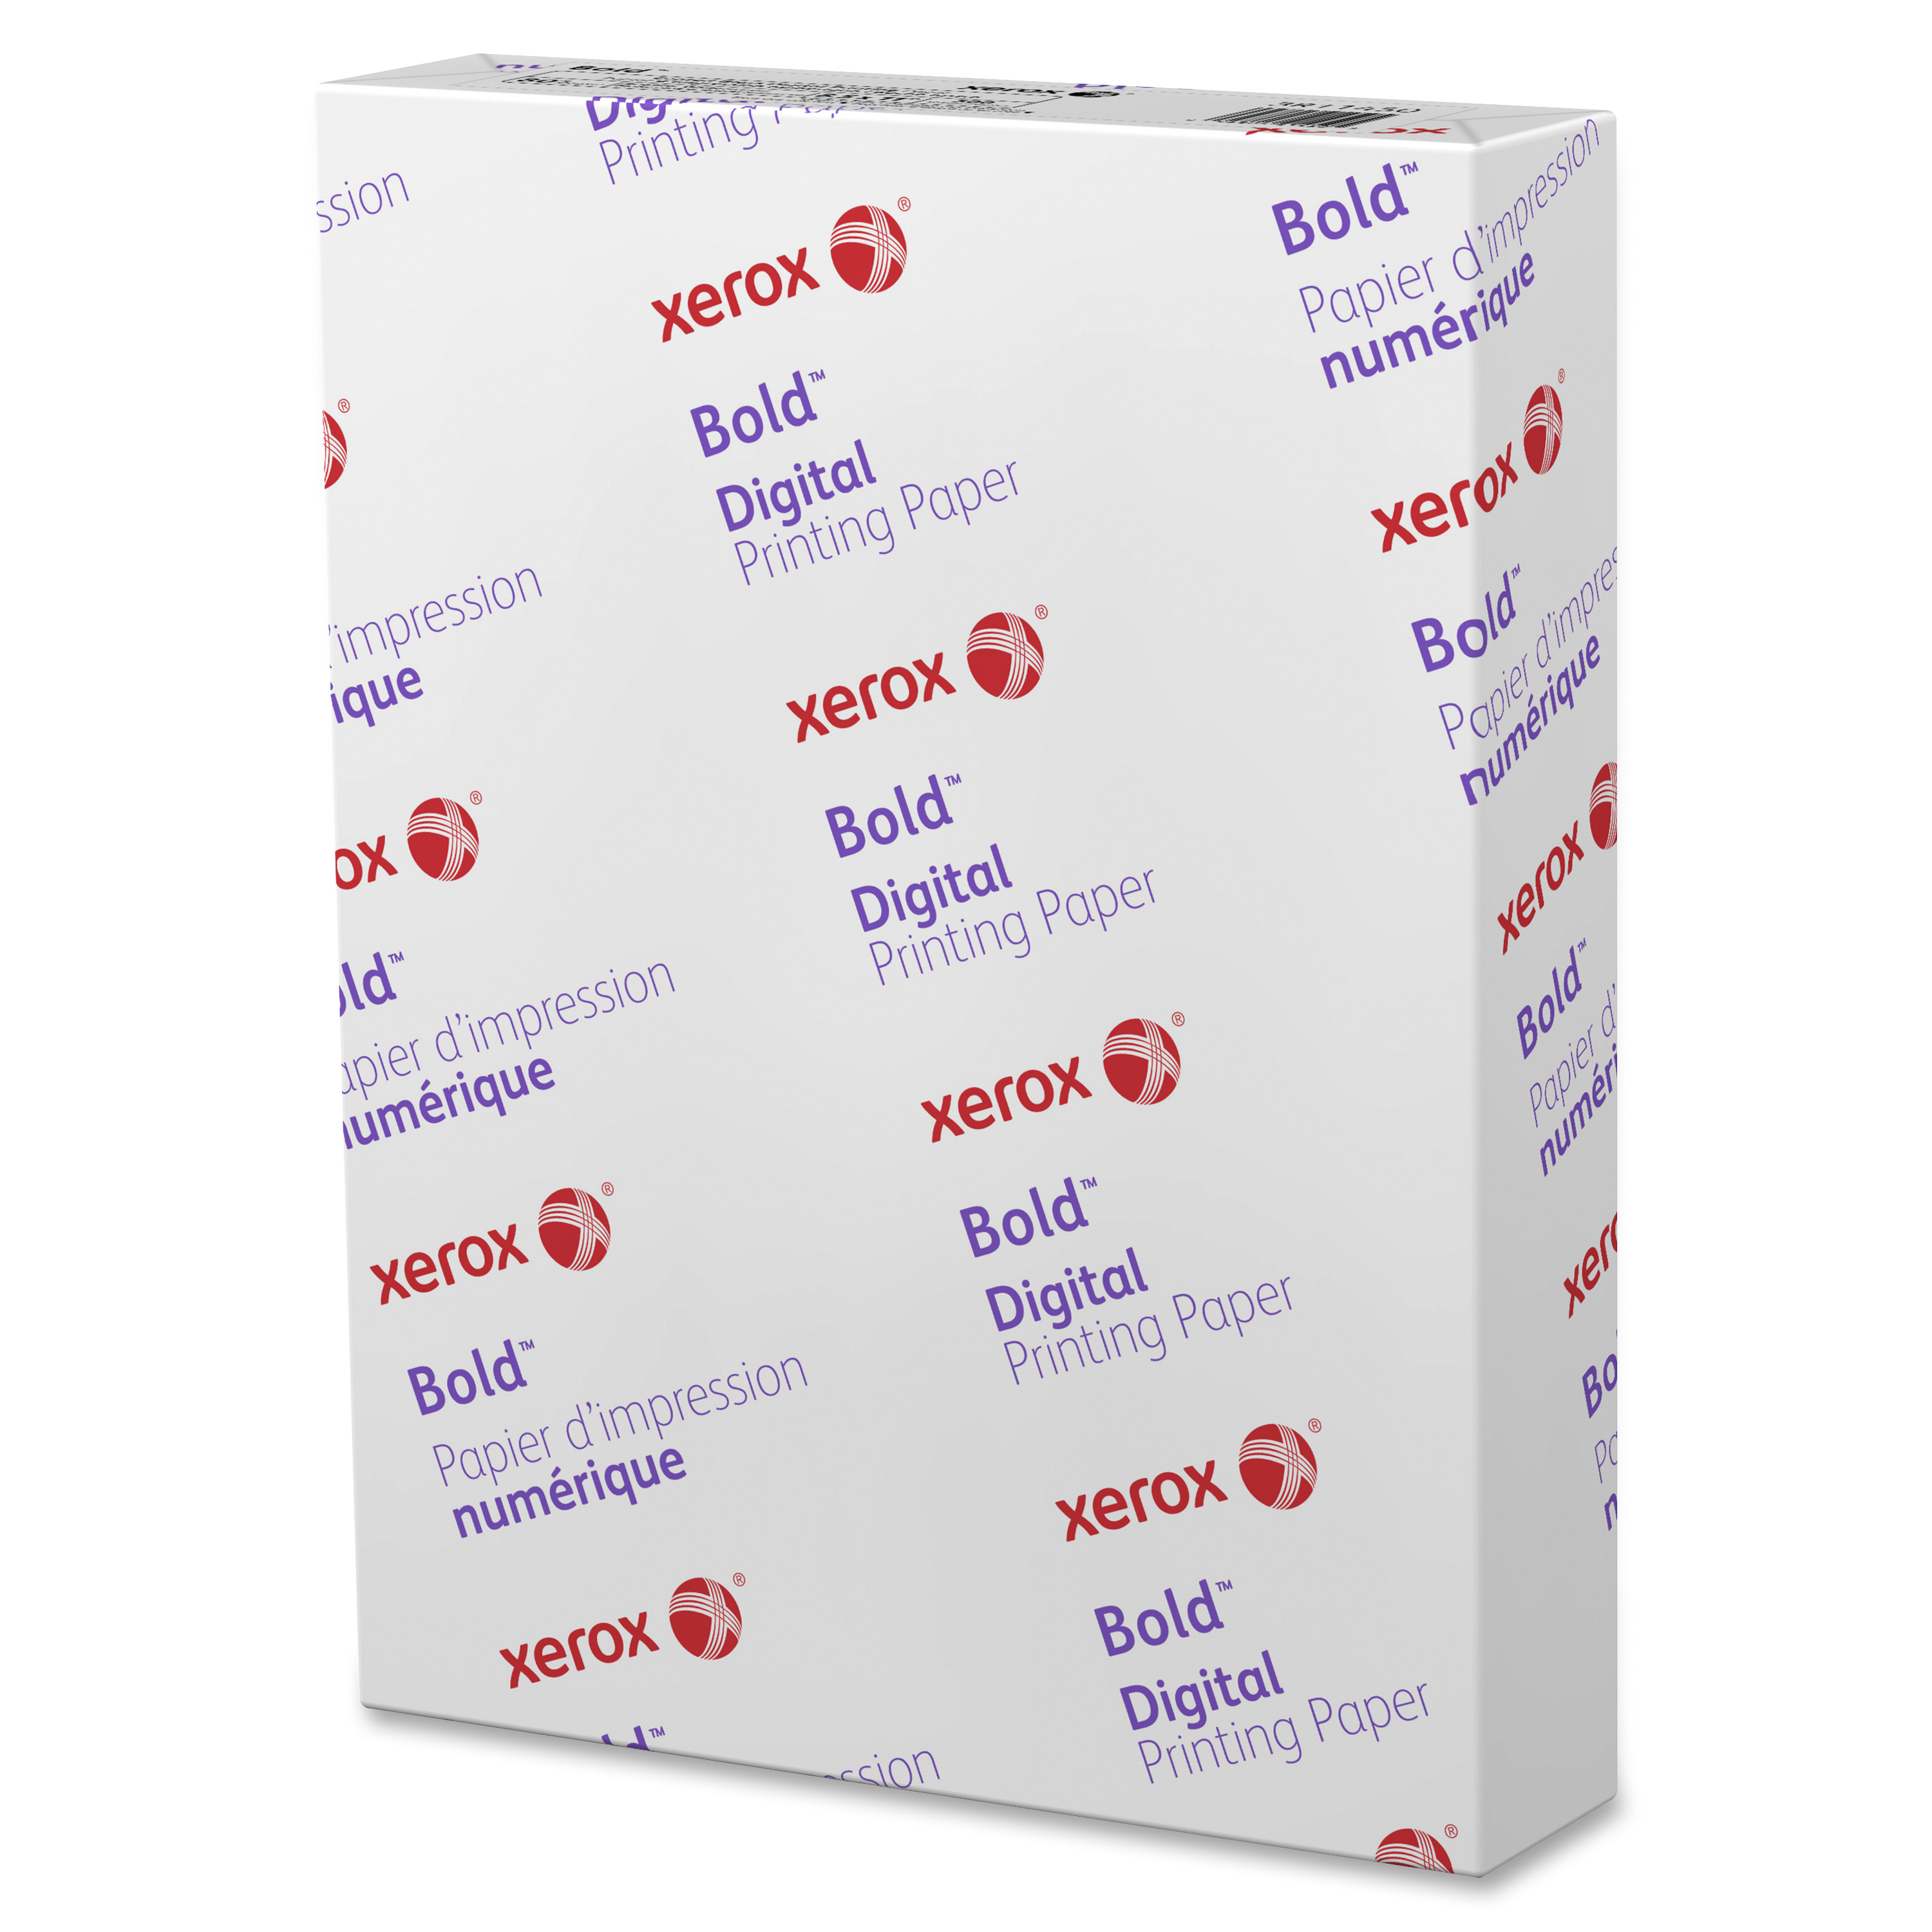 Xerox 3R11450 Bold Coated Gloss Digital Printing Office Paper